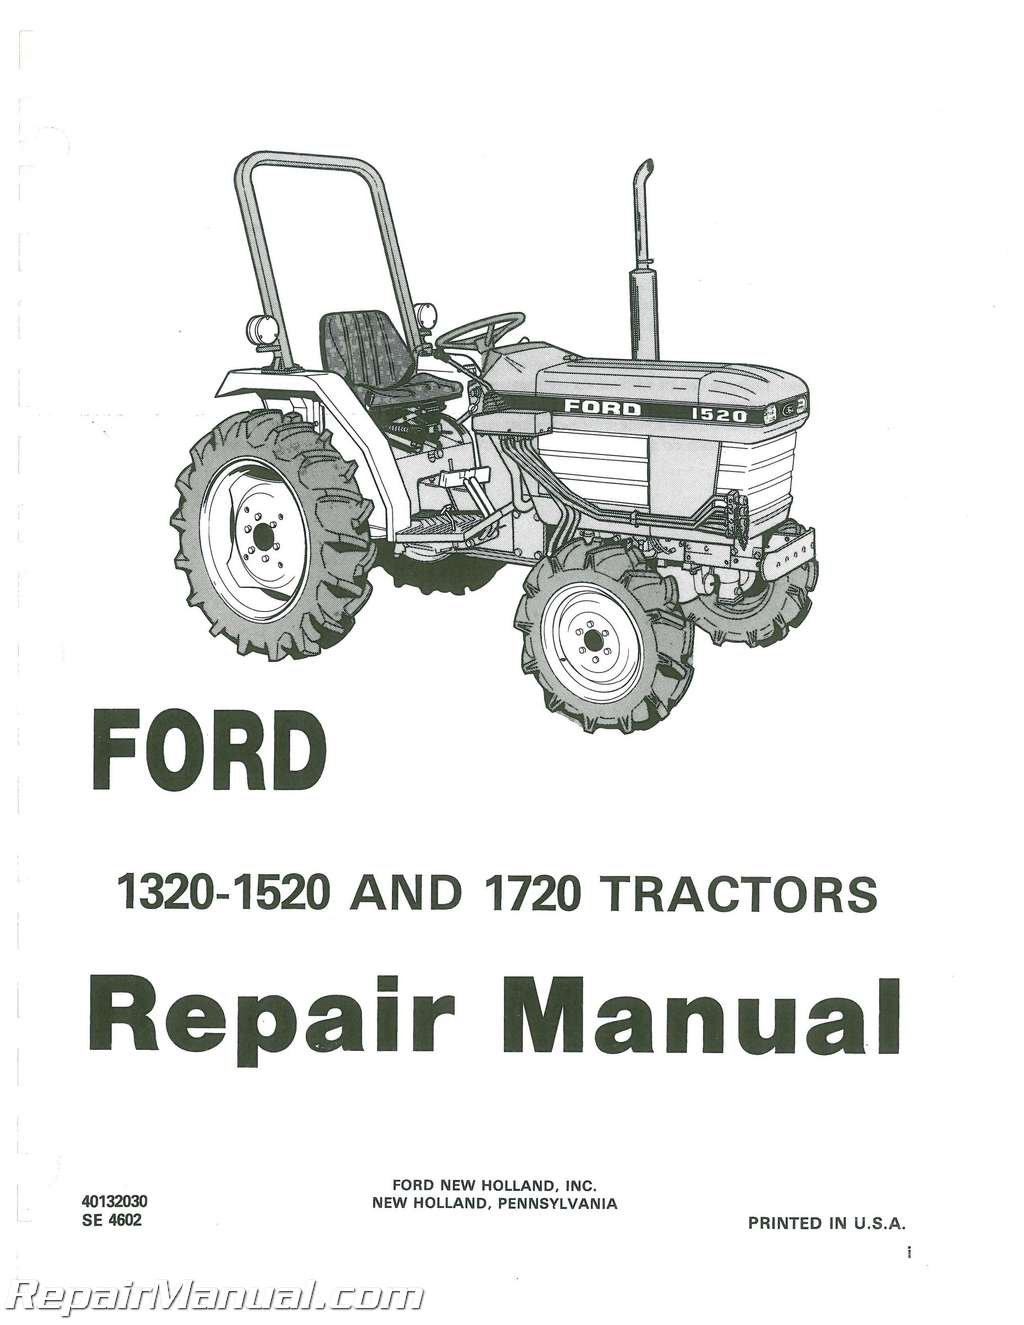 Ford Tractor Parts Diagram